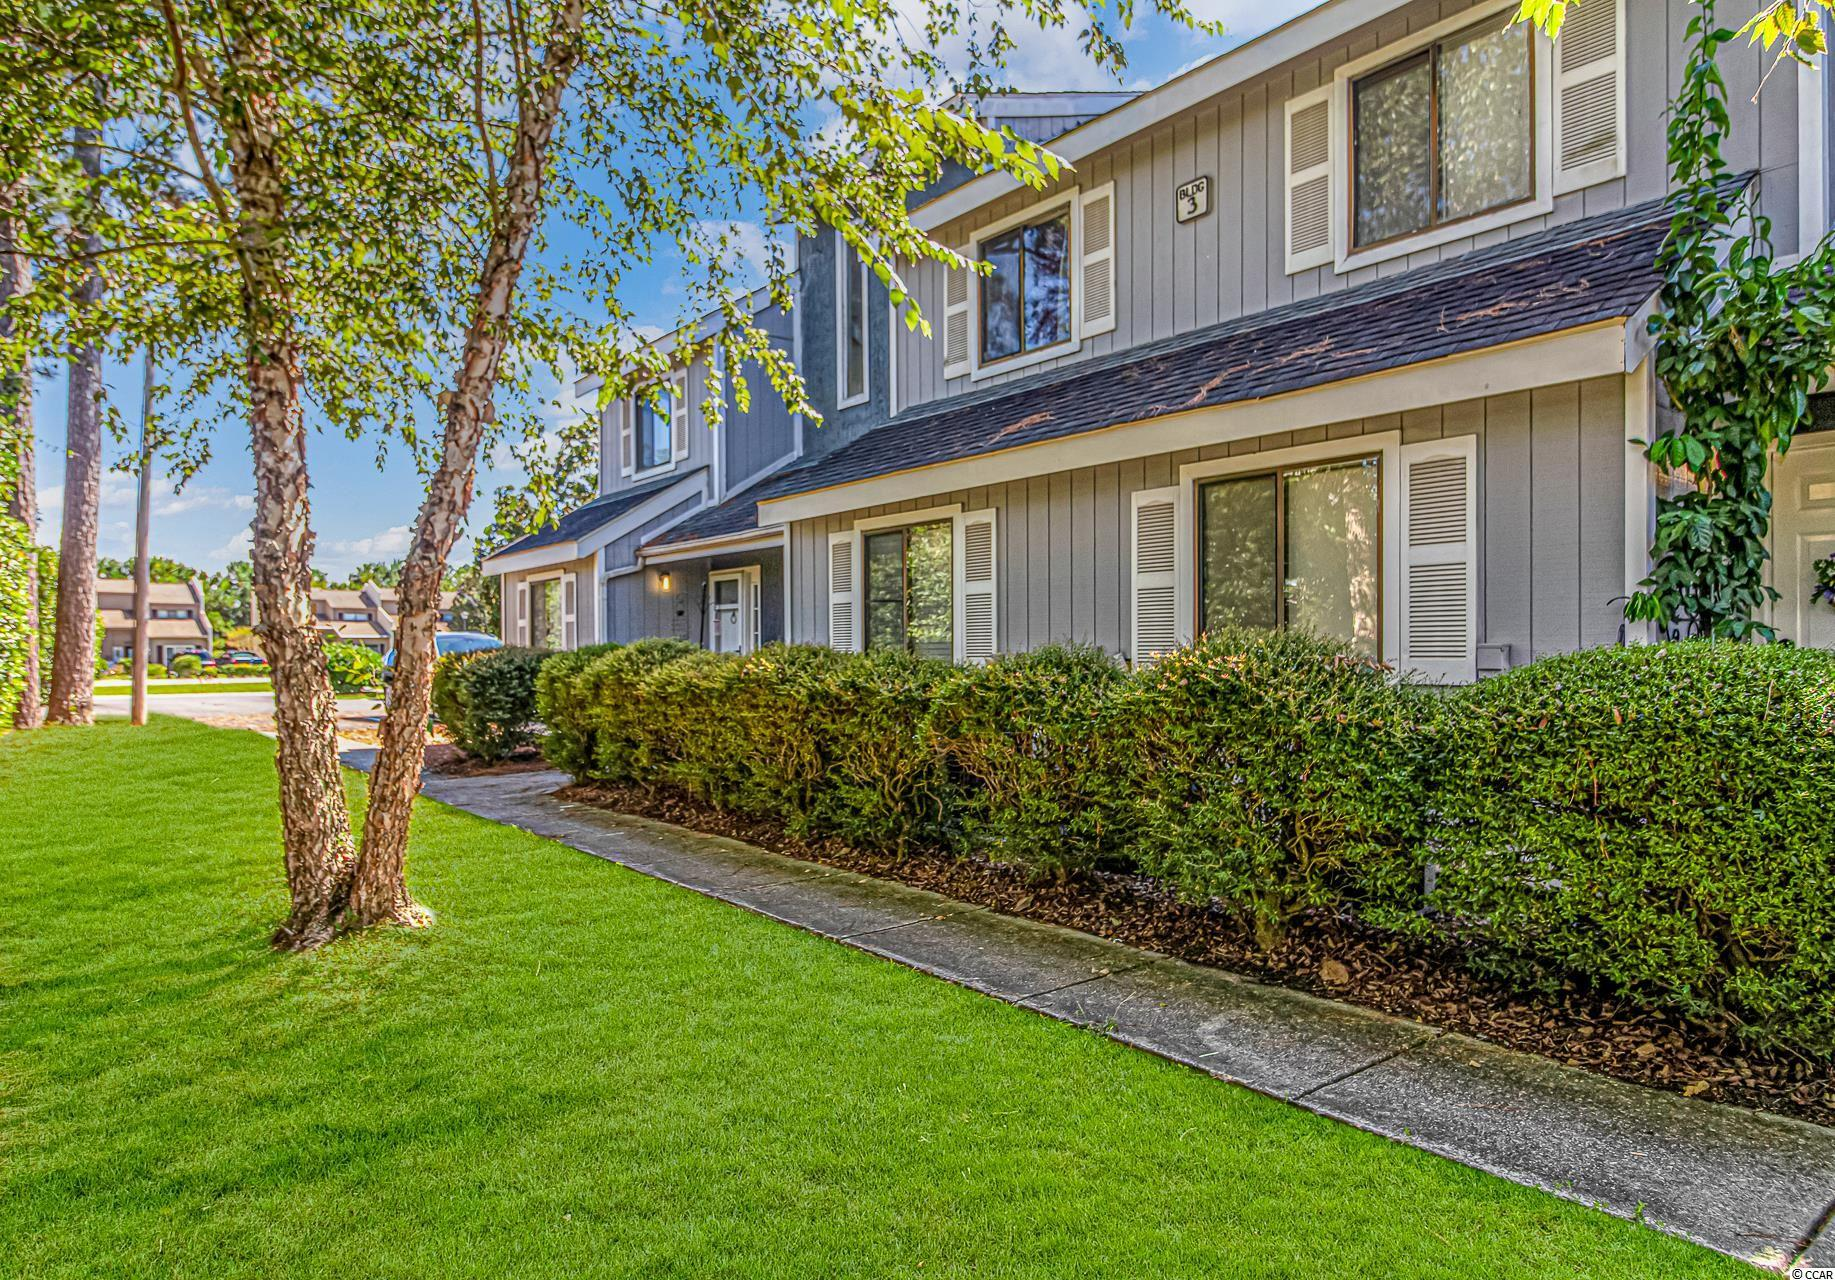 Here is a unit less than 10 mins to the ocean for a great price! Currently has an annual tenant with a lease that expires 3/1/2021.  Buy it now and you will be ready to enjoy spring at the coast. This will not last long.